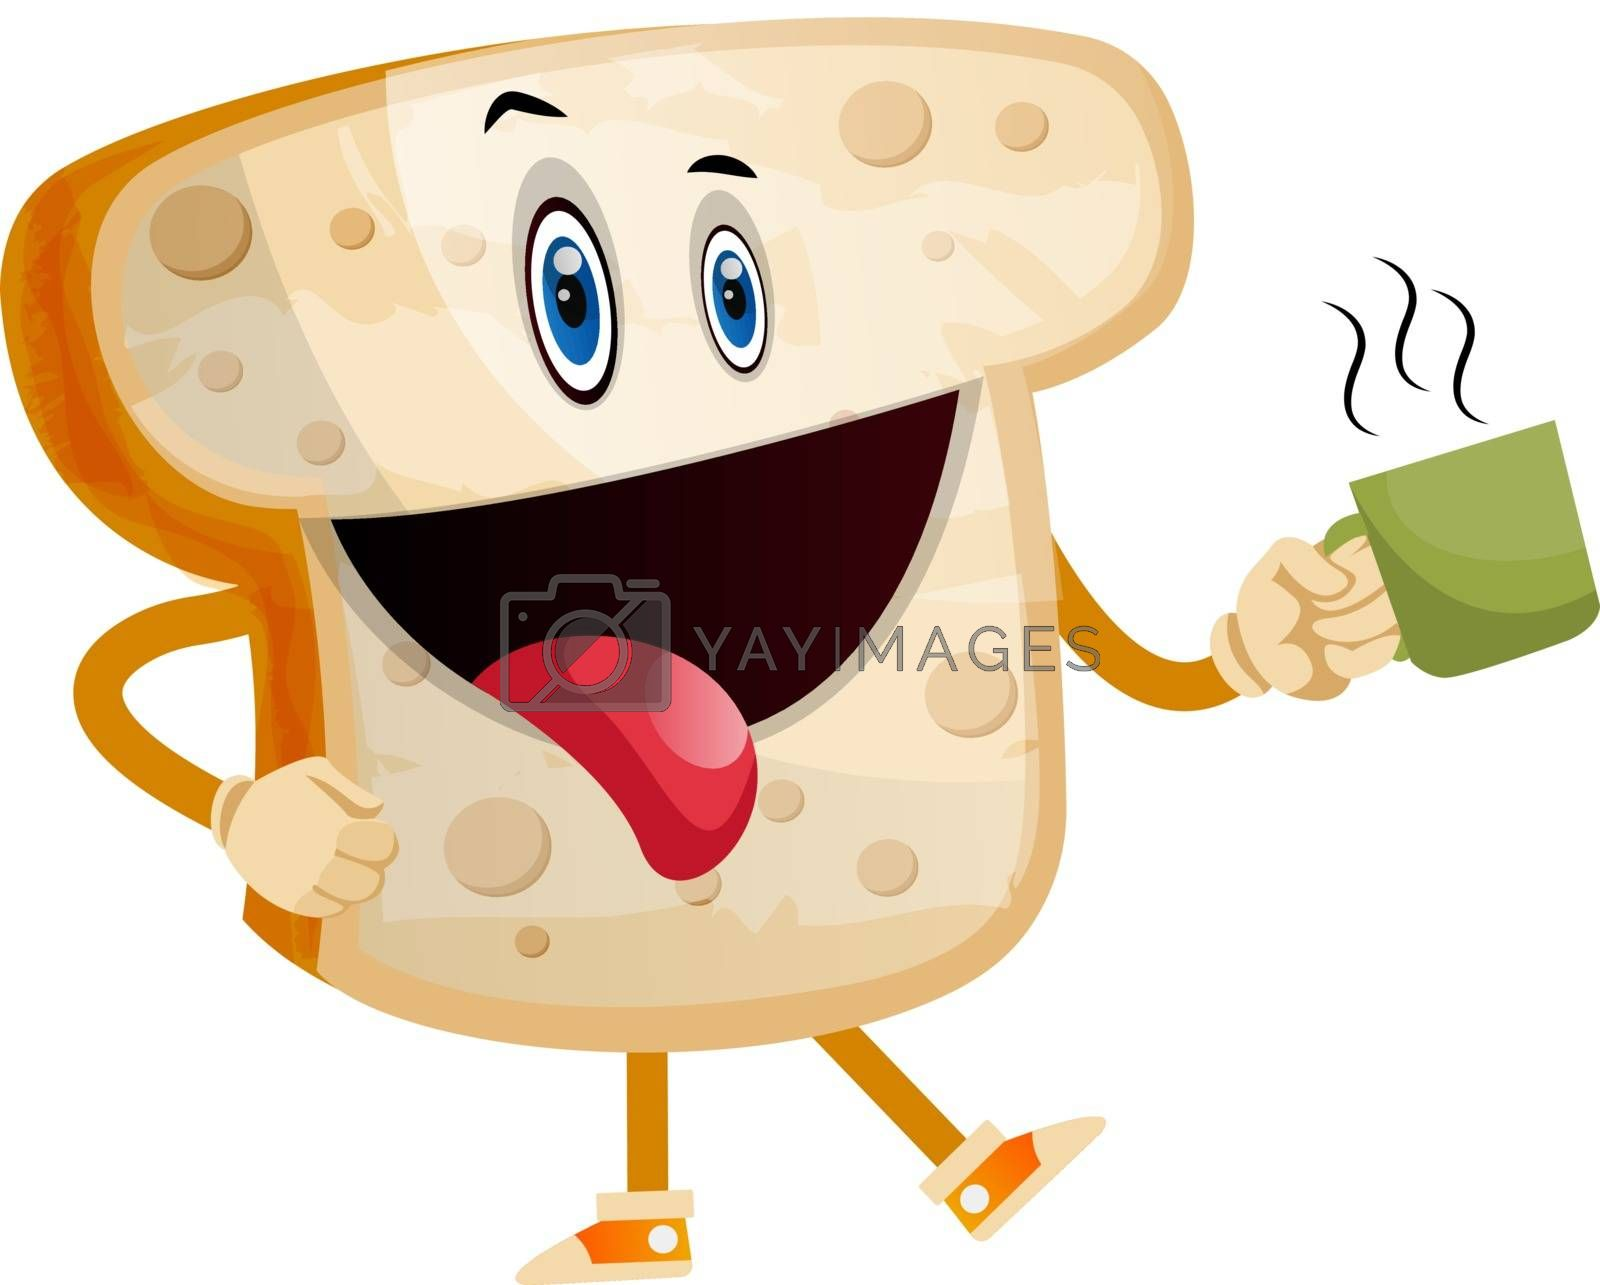 Royalty free image of Hot Bread illustration vector on white background by Morphart